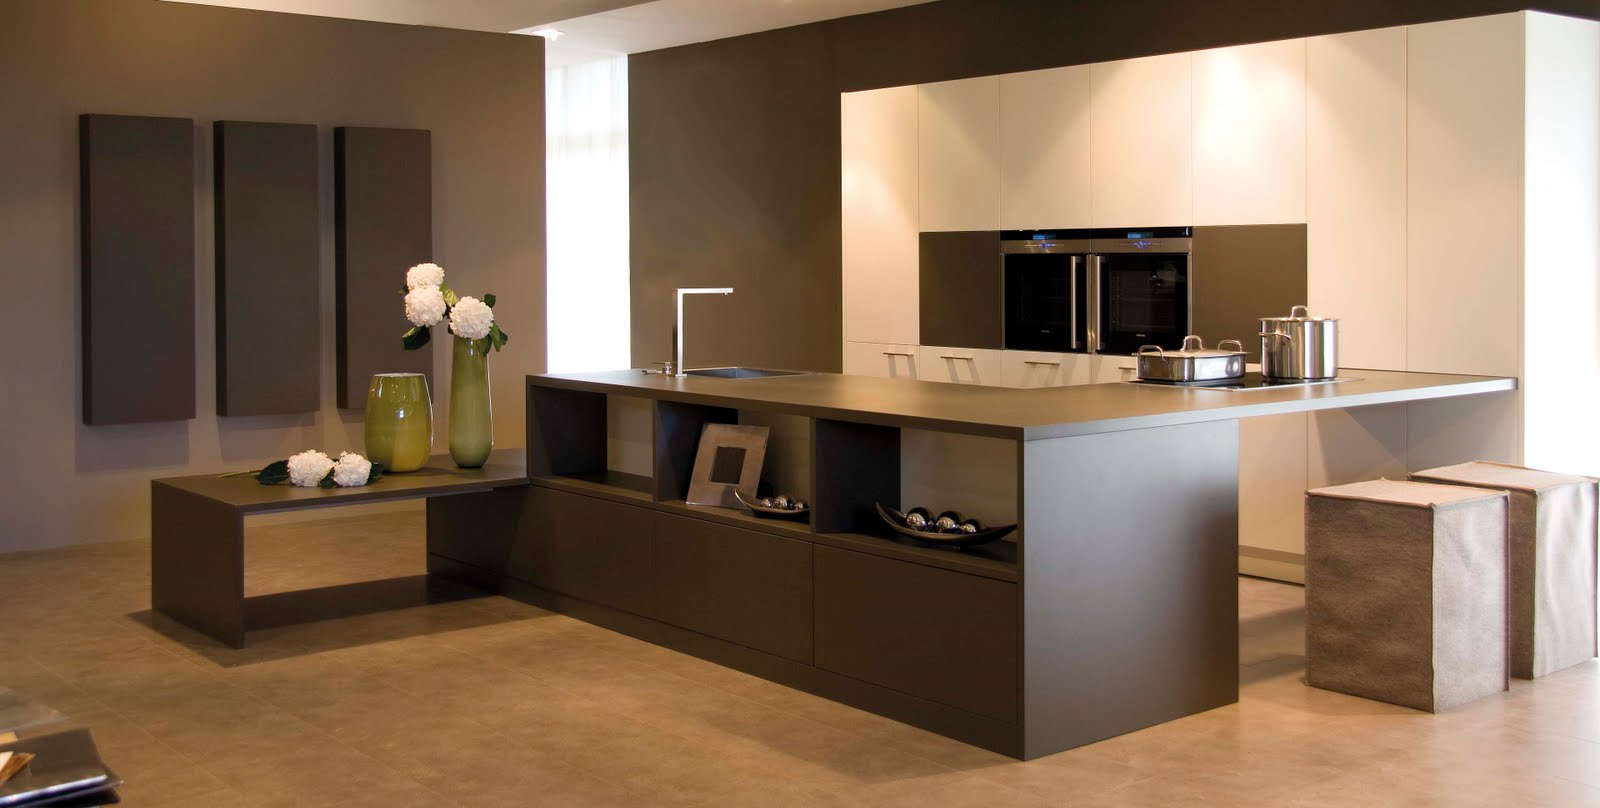 Csi Kitchen Amp Bath News Visit Our New Leicht Site